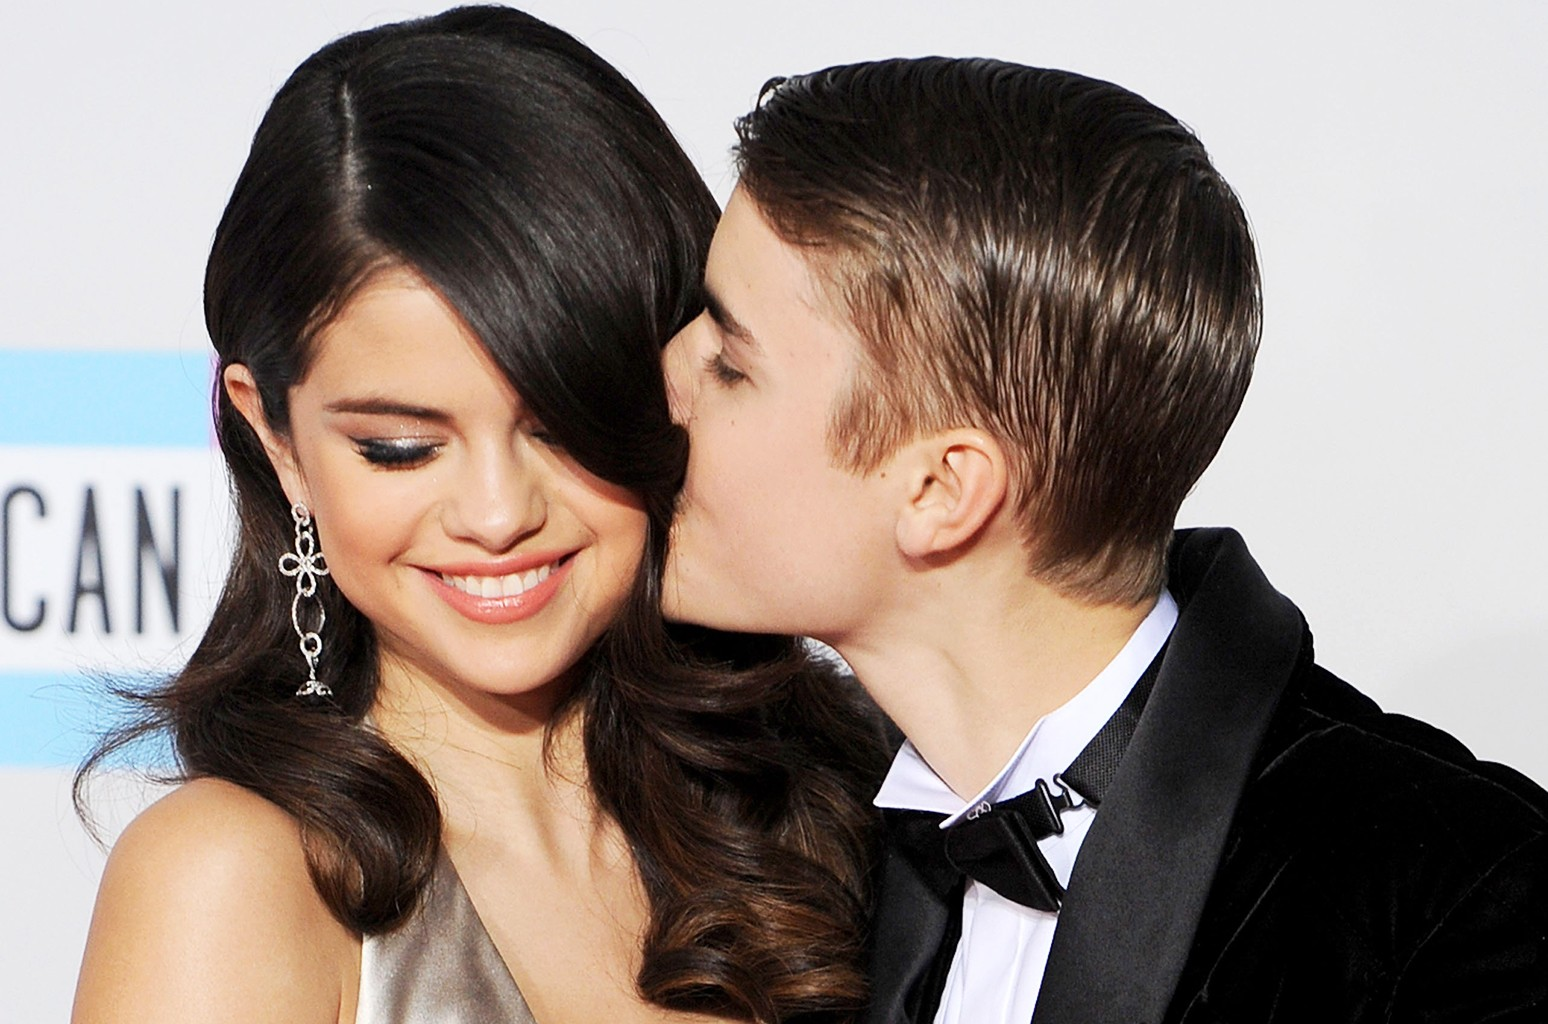 Selena Gomez and Justin Bieber at the 2011 American Music Awards